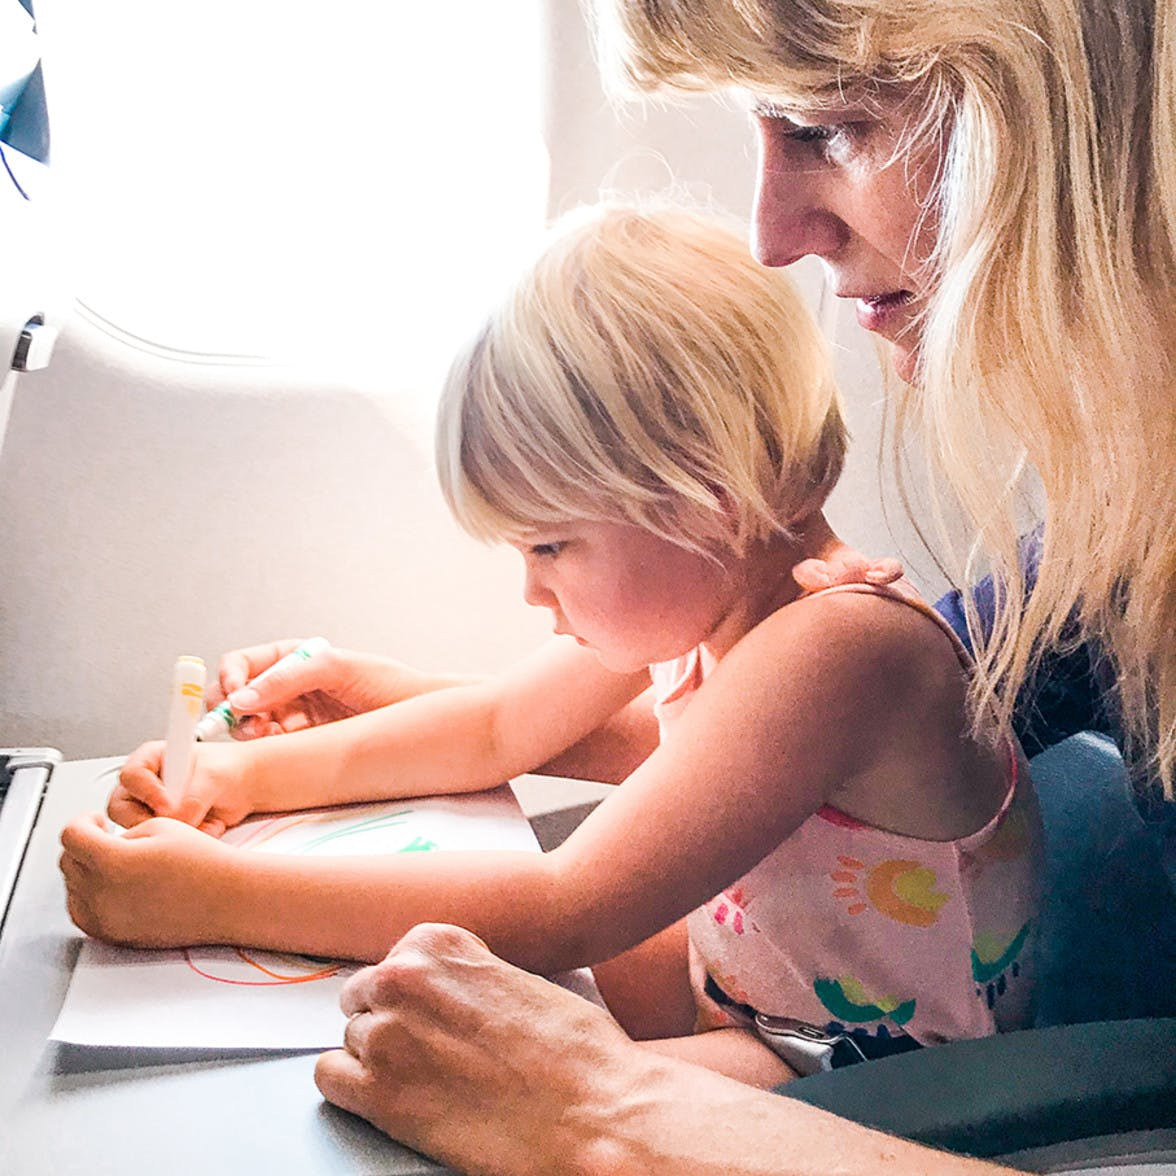 Child and mother sitting together on an air plane drawing on paper